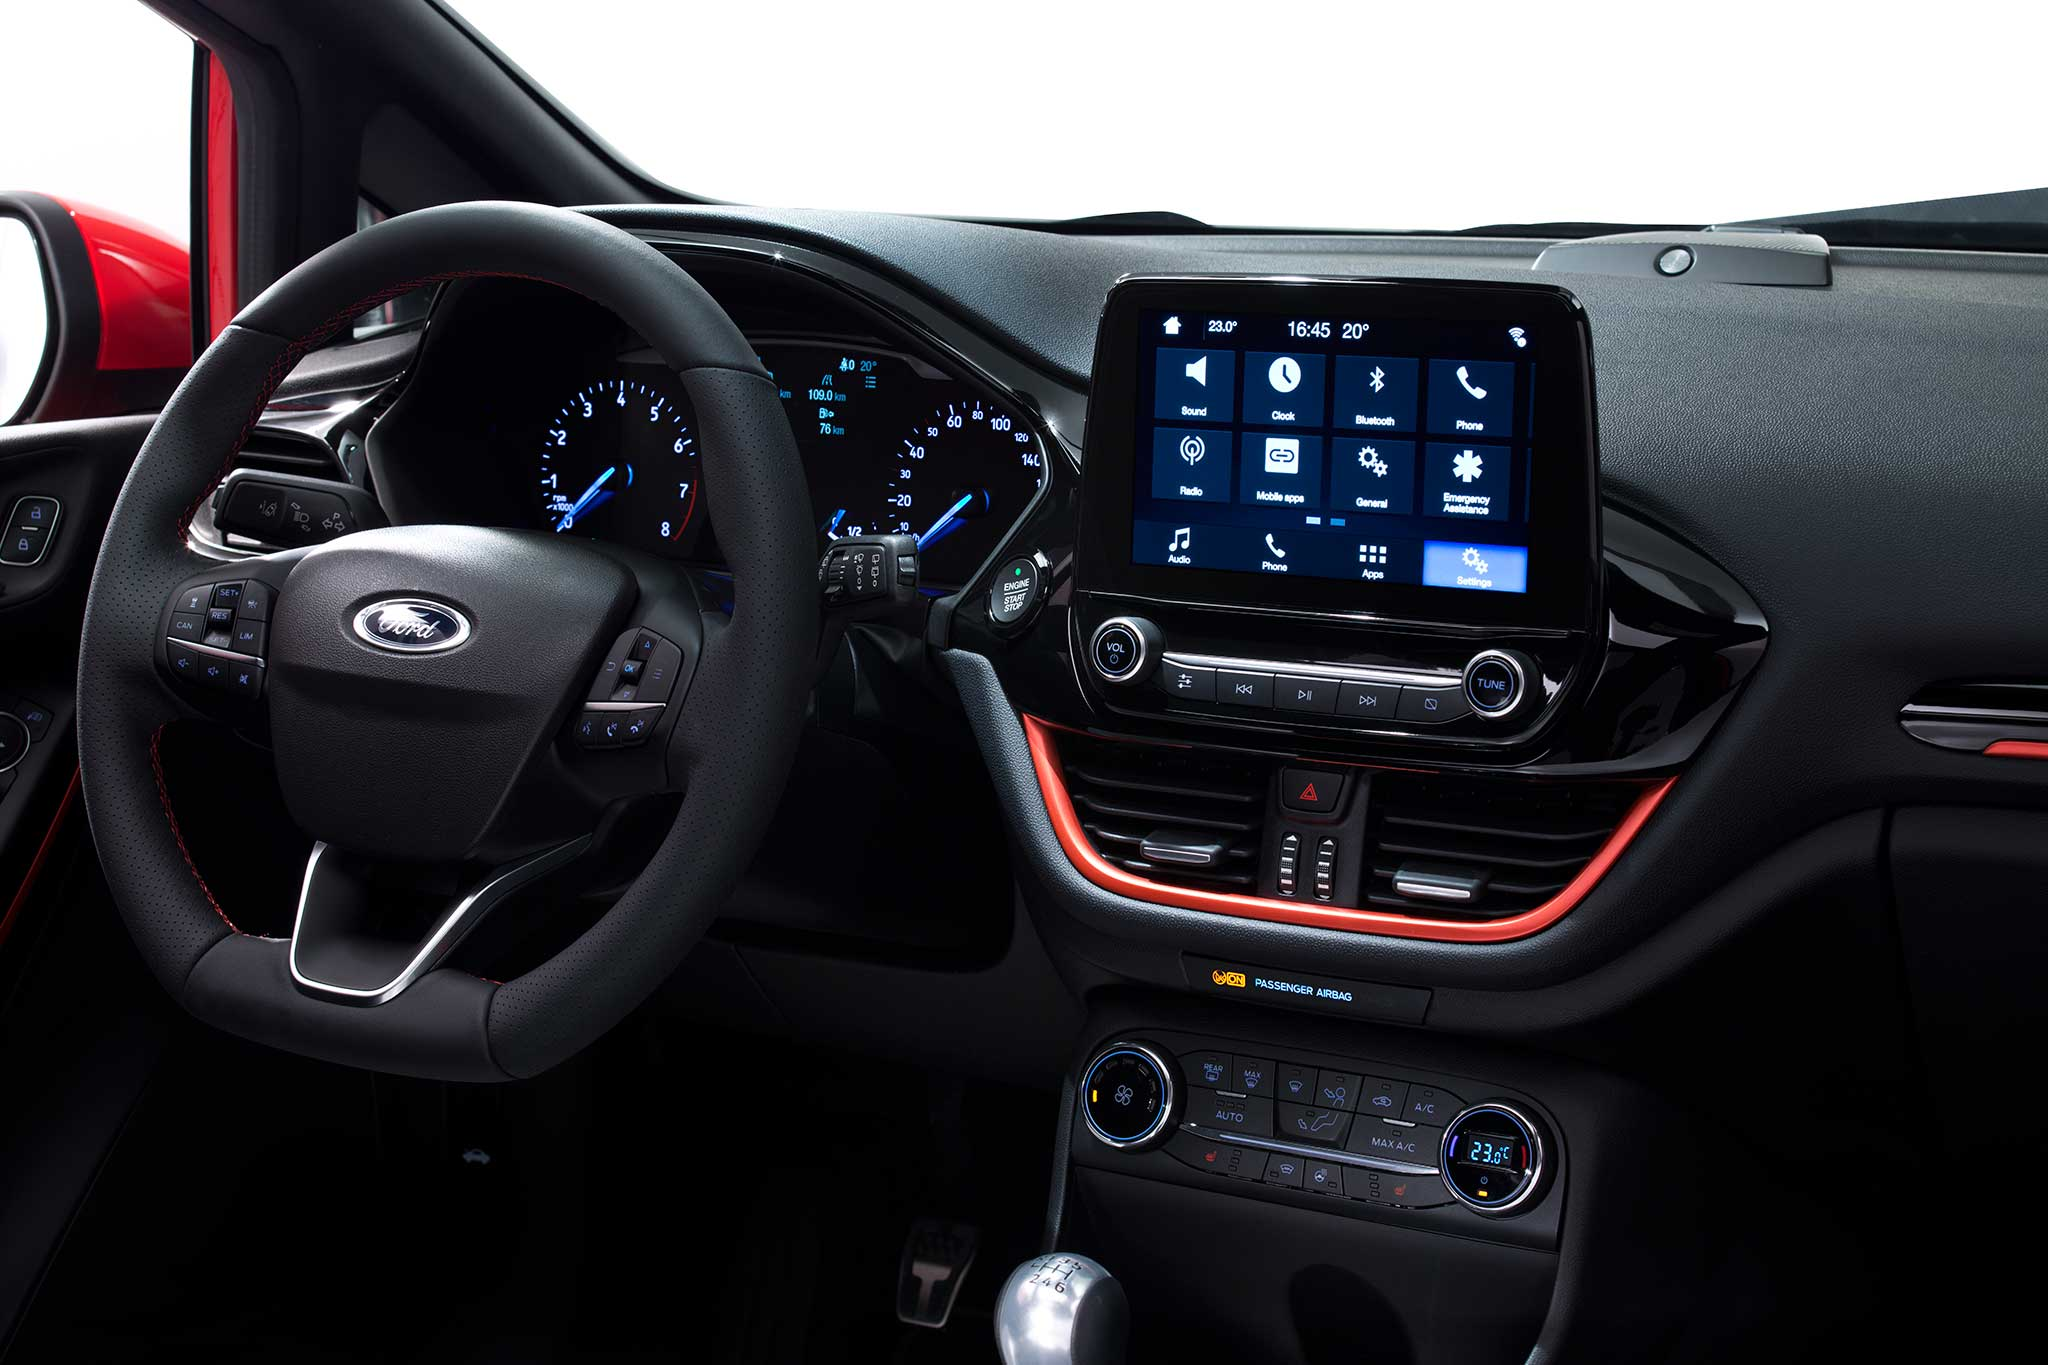 2018 Ford Fiesta Euro spec dashboard